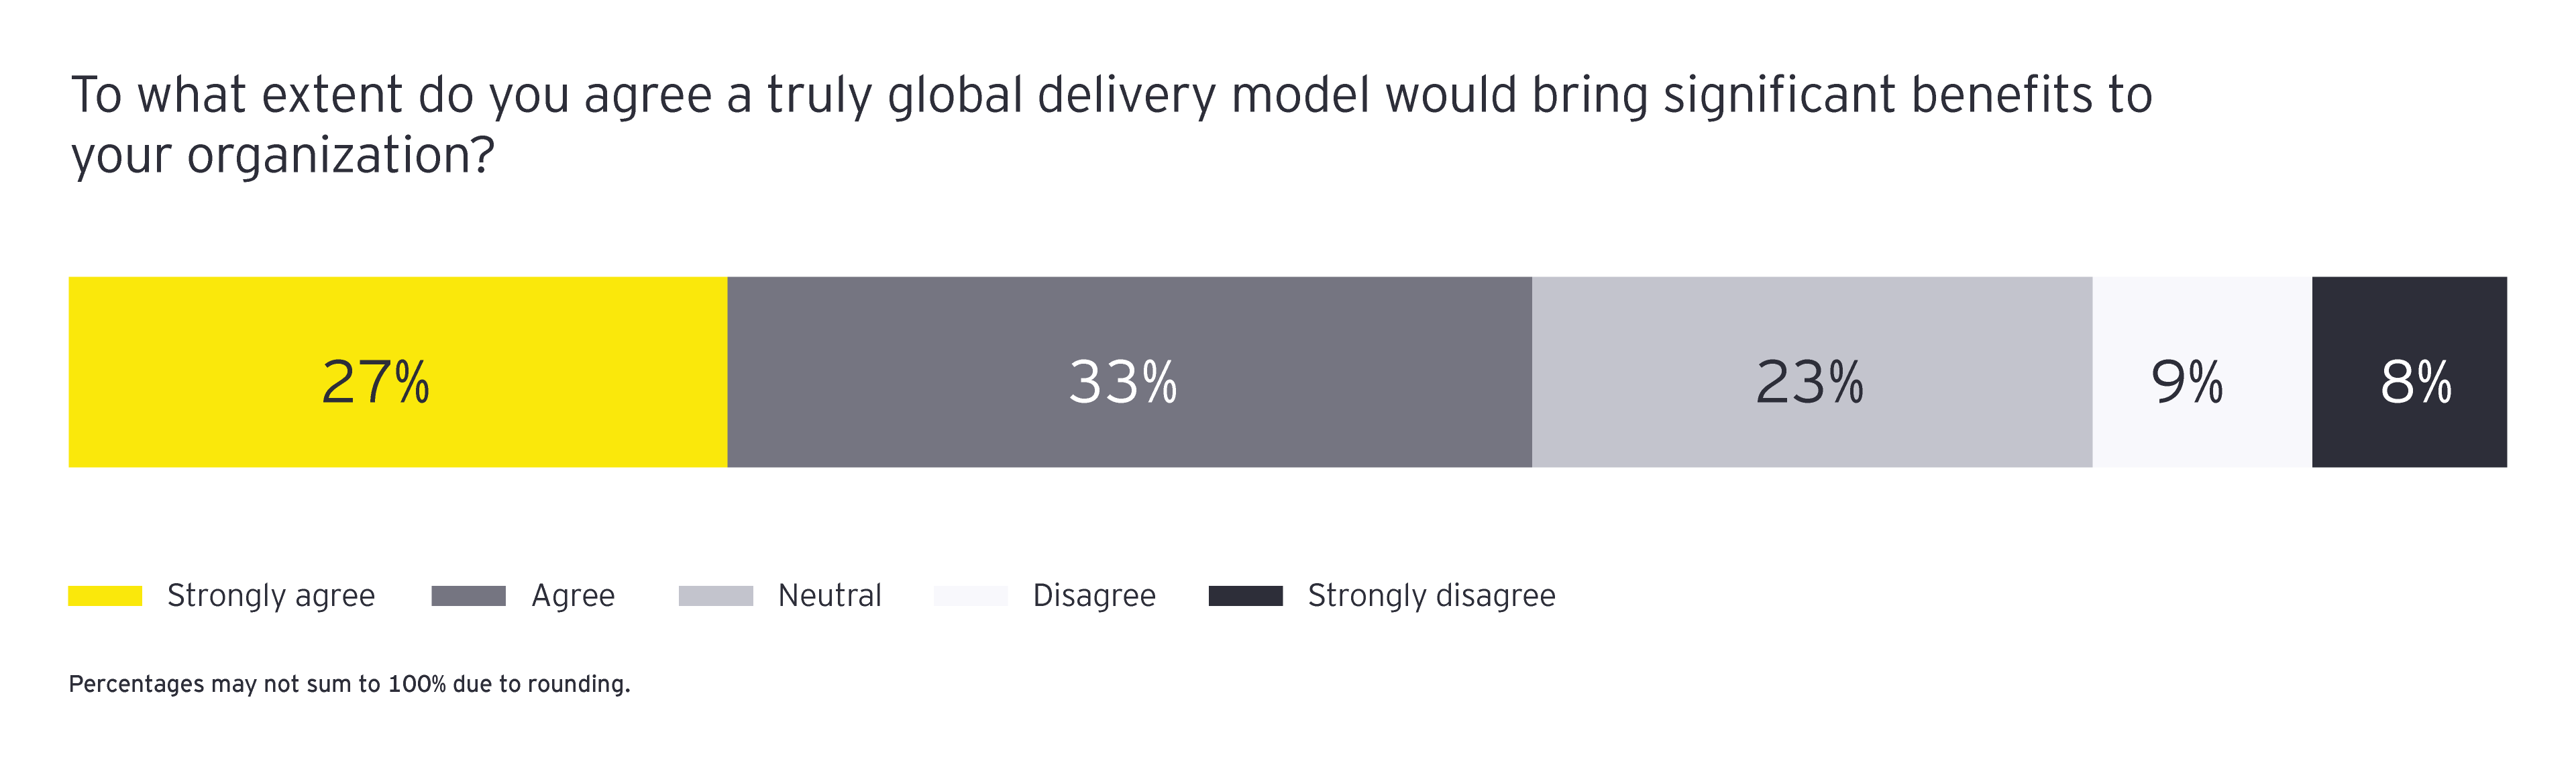 EY to what extent do you agree a truly global delivery